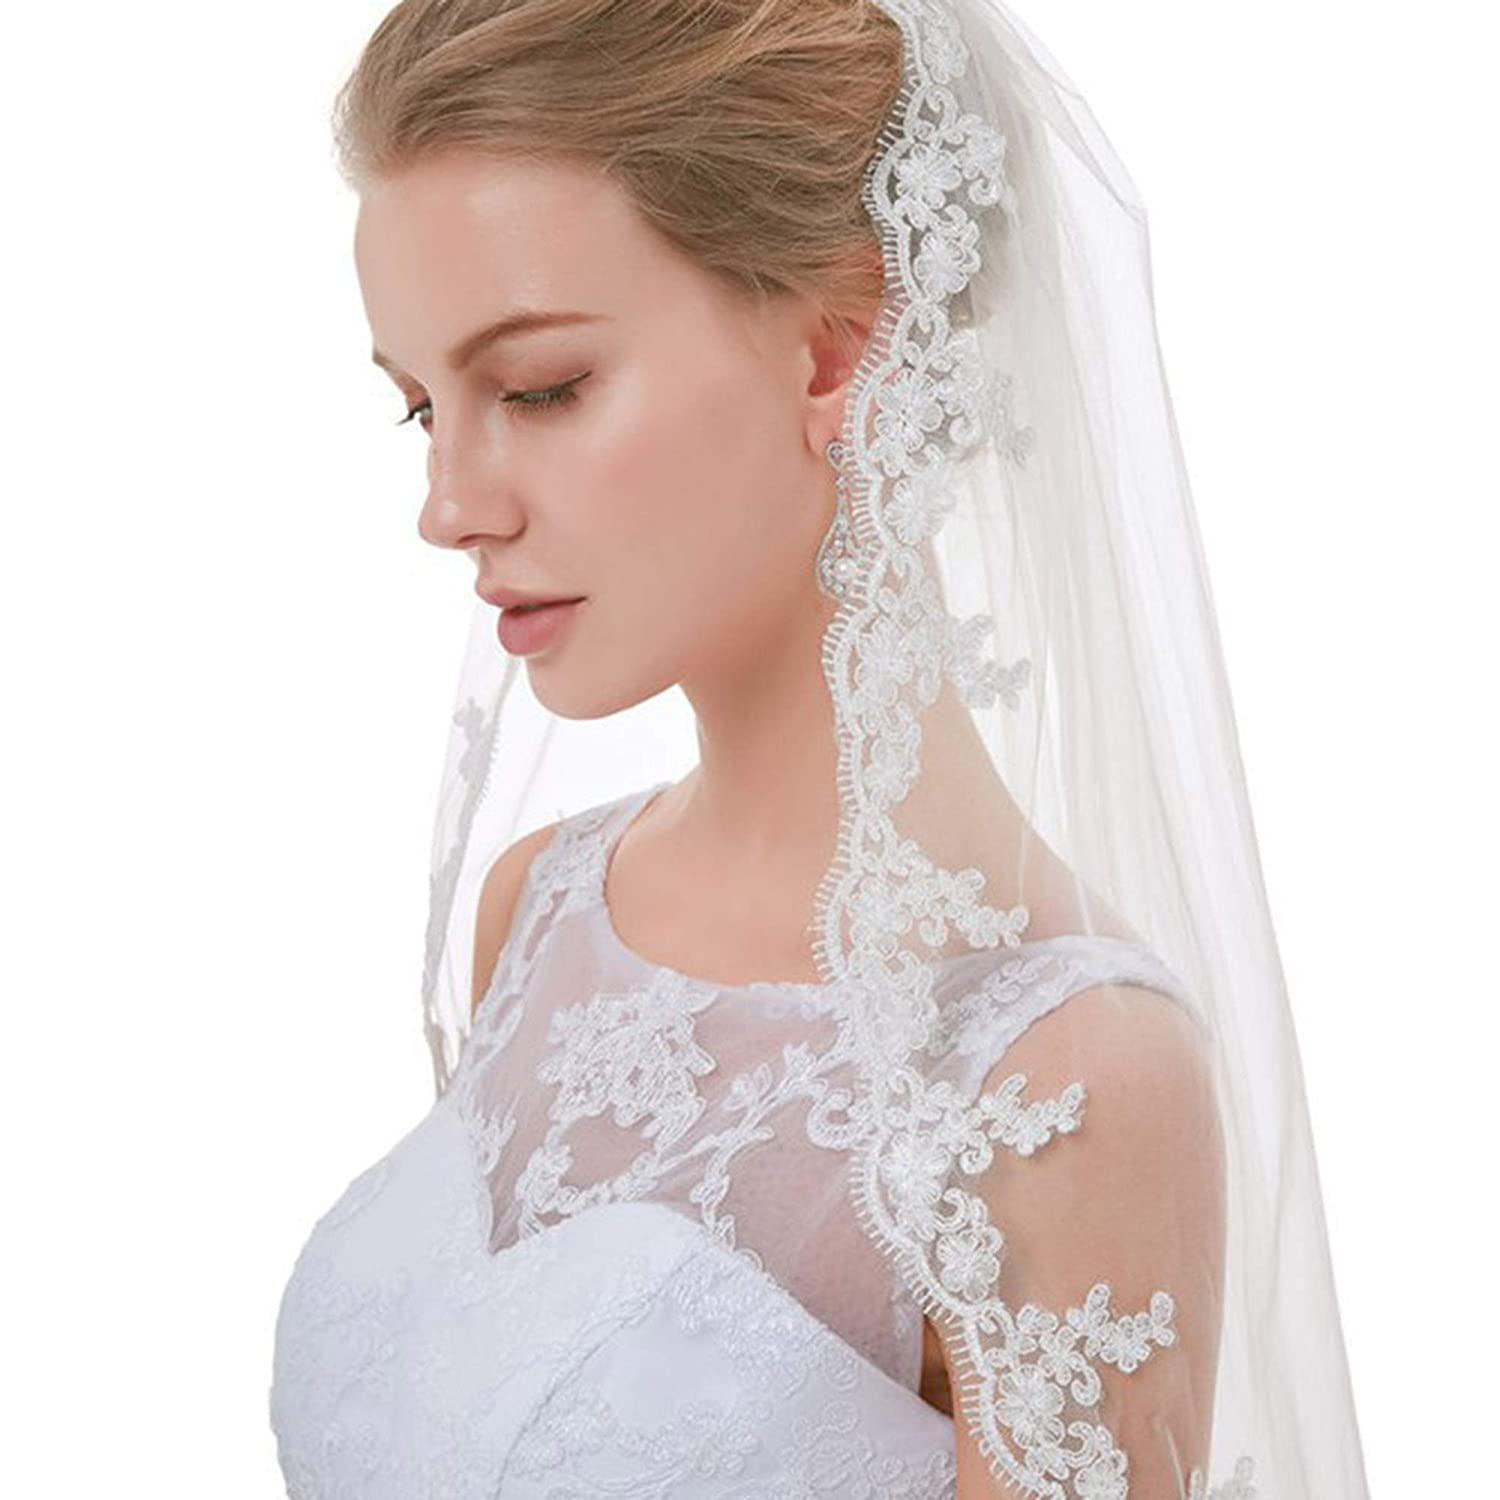 0.9M Beautyflier Bridal Veil Fingertip Length 1 Tier Floral Embroider Lace Edge Wedding Veil with Comb